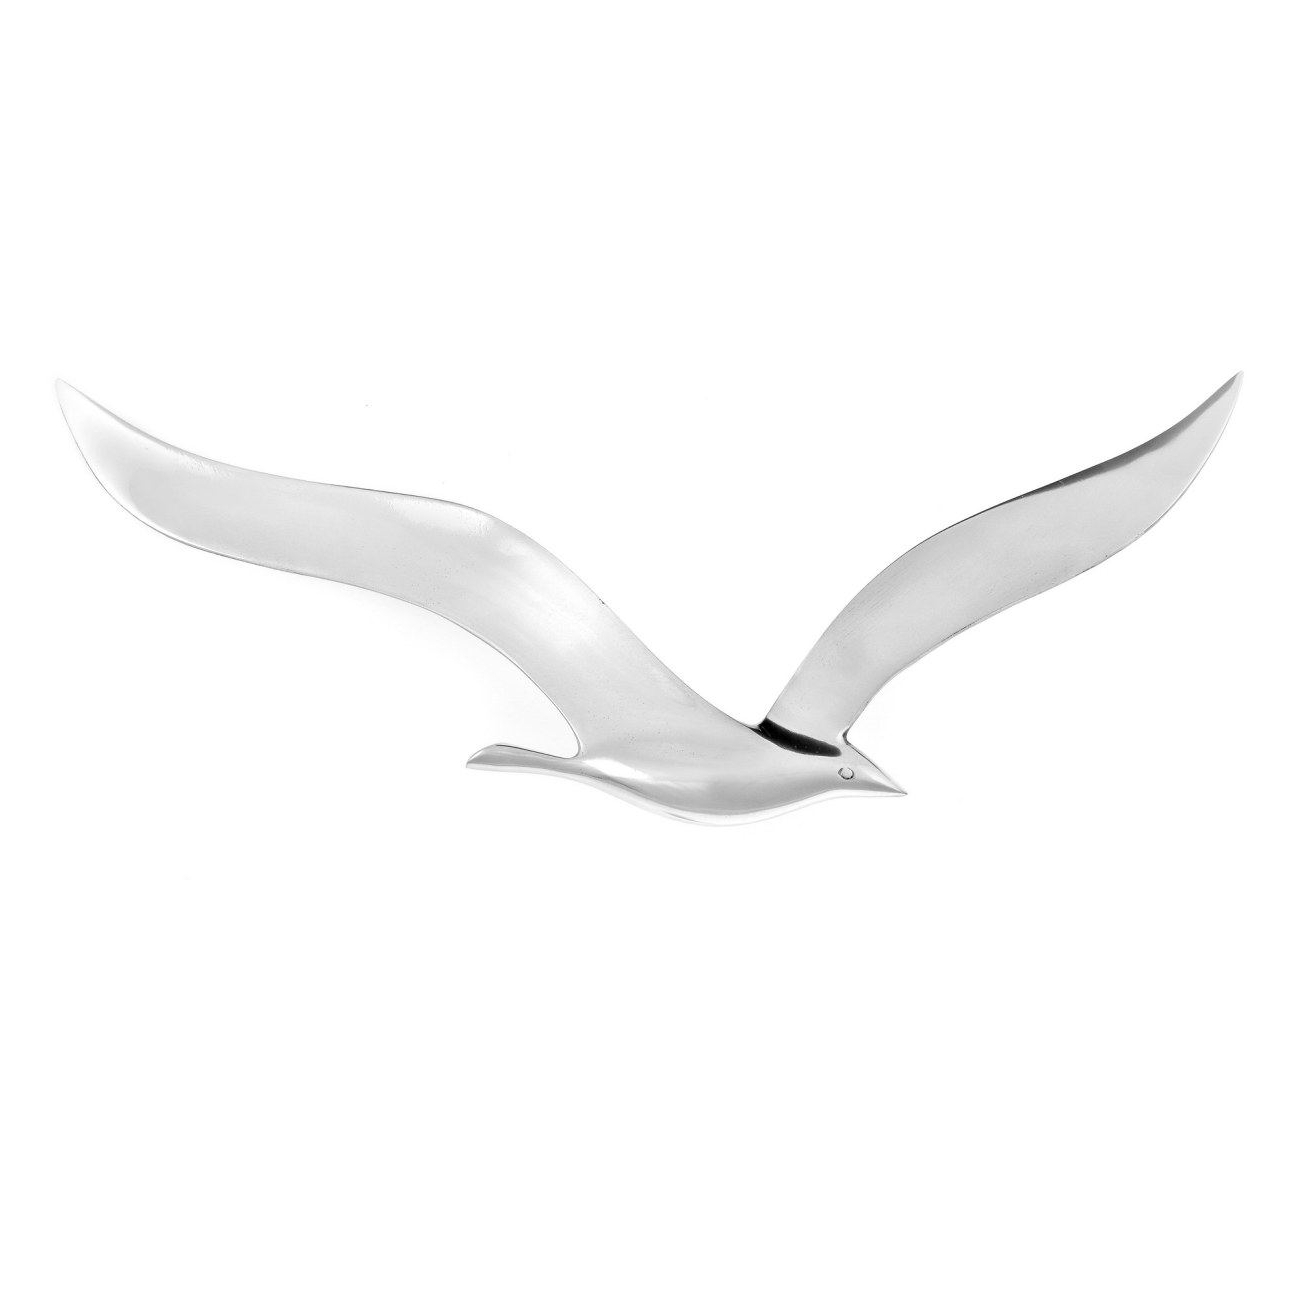 2017 Silver Metal Wall Art Inside Flying Seagull Bird – Handmade Metal Wall Art Decor – Silver, Large (View 1 of 15)